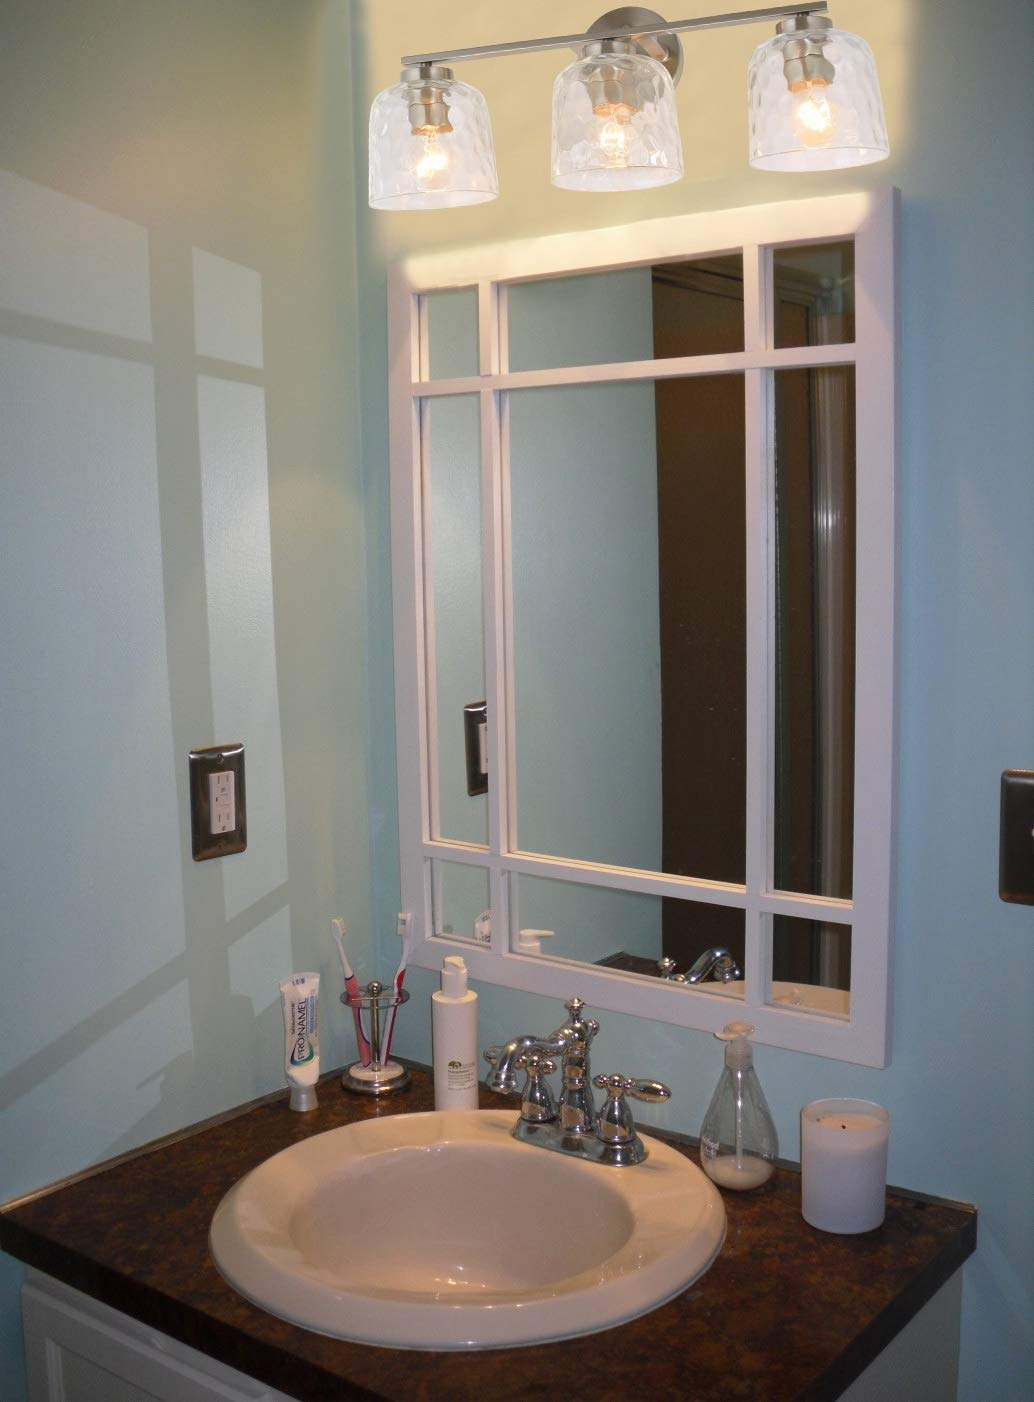 Alice House 20'' Vanity Lights with Hammered Glass, 3 Light Wall Lighting, Brushed Nickel Bathroom Lights Over Mirror, Bathroom Lighting AL6091-W3 by ALICE HOUSE (Image #4)